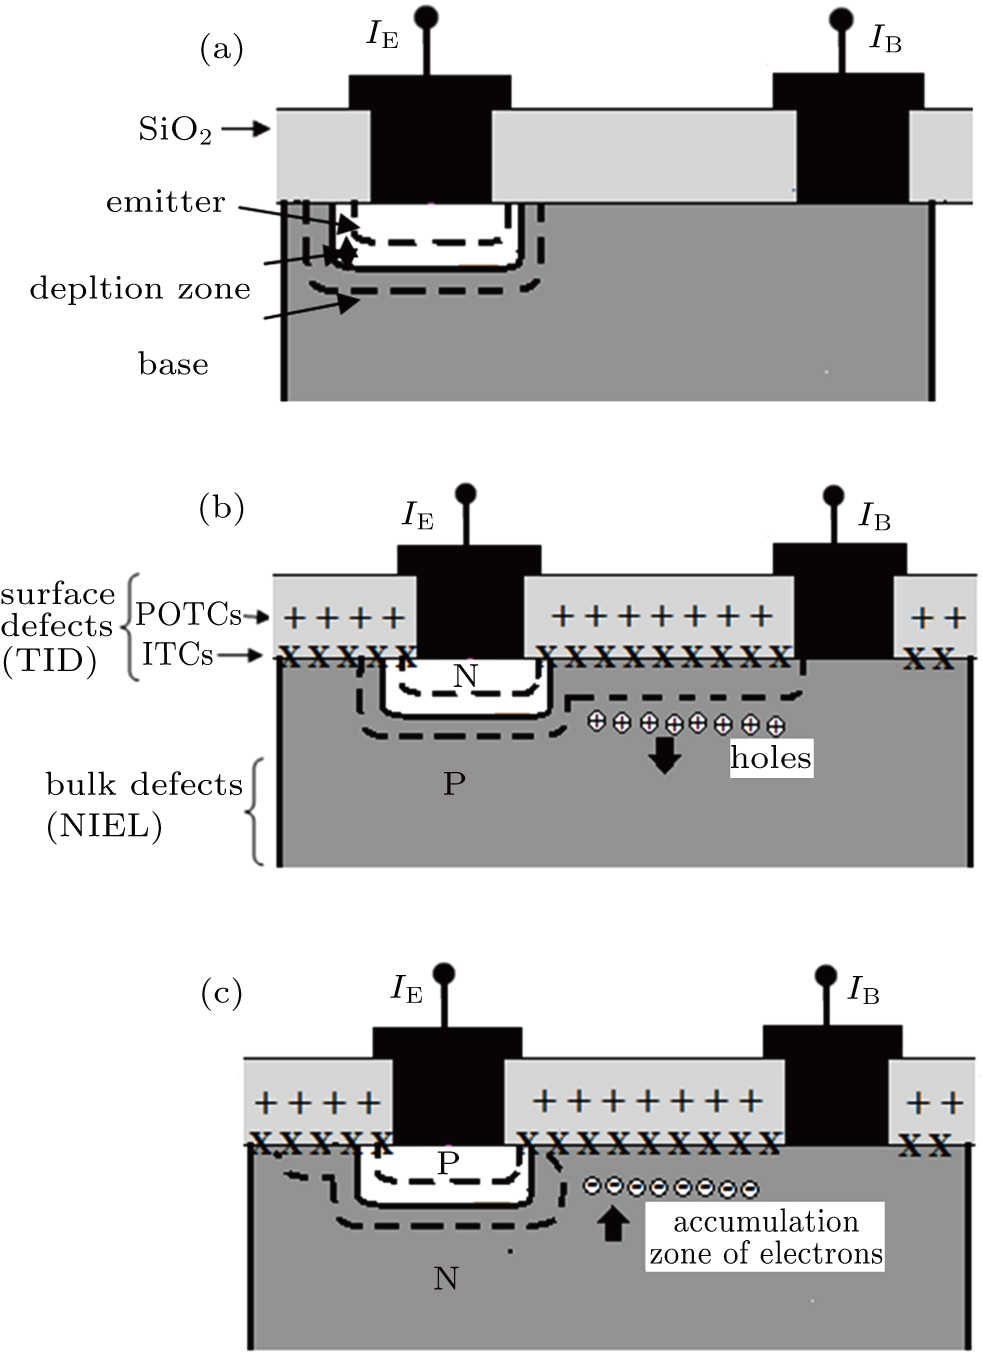 Bulk And Surface Damages In Complementary Bipolar Junction Commonbasenpntransistorcircuitjpg Viewdownloadnew Window